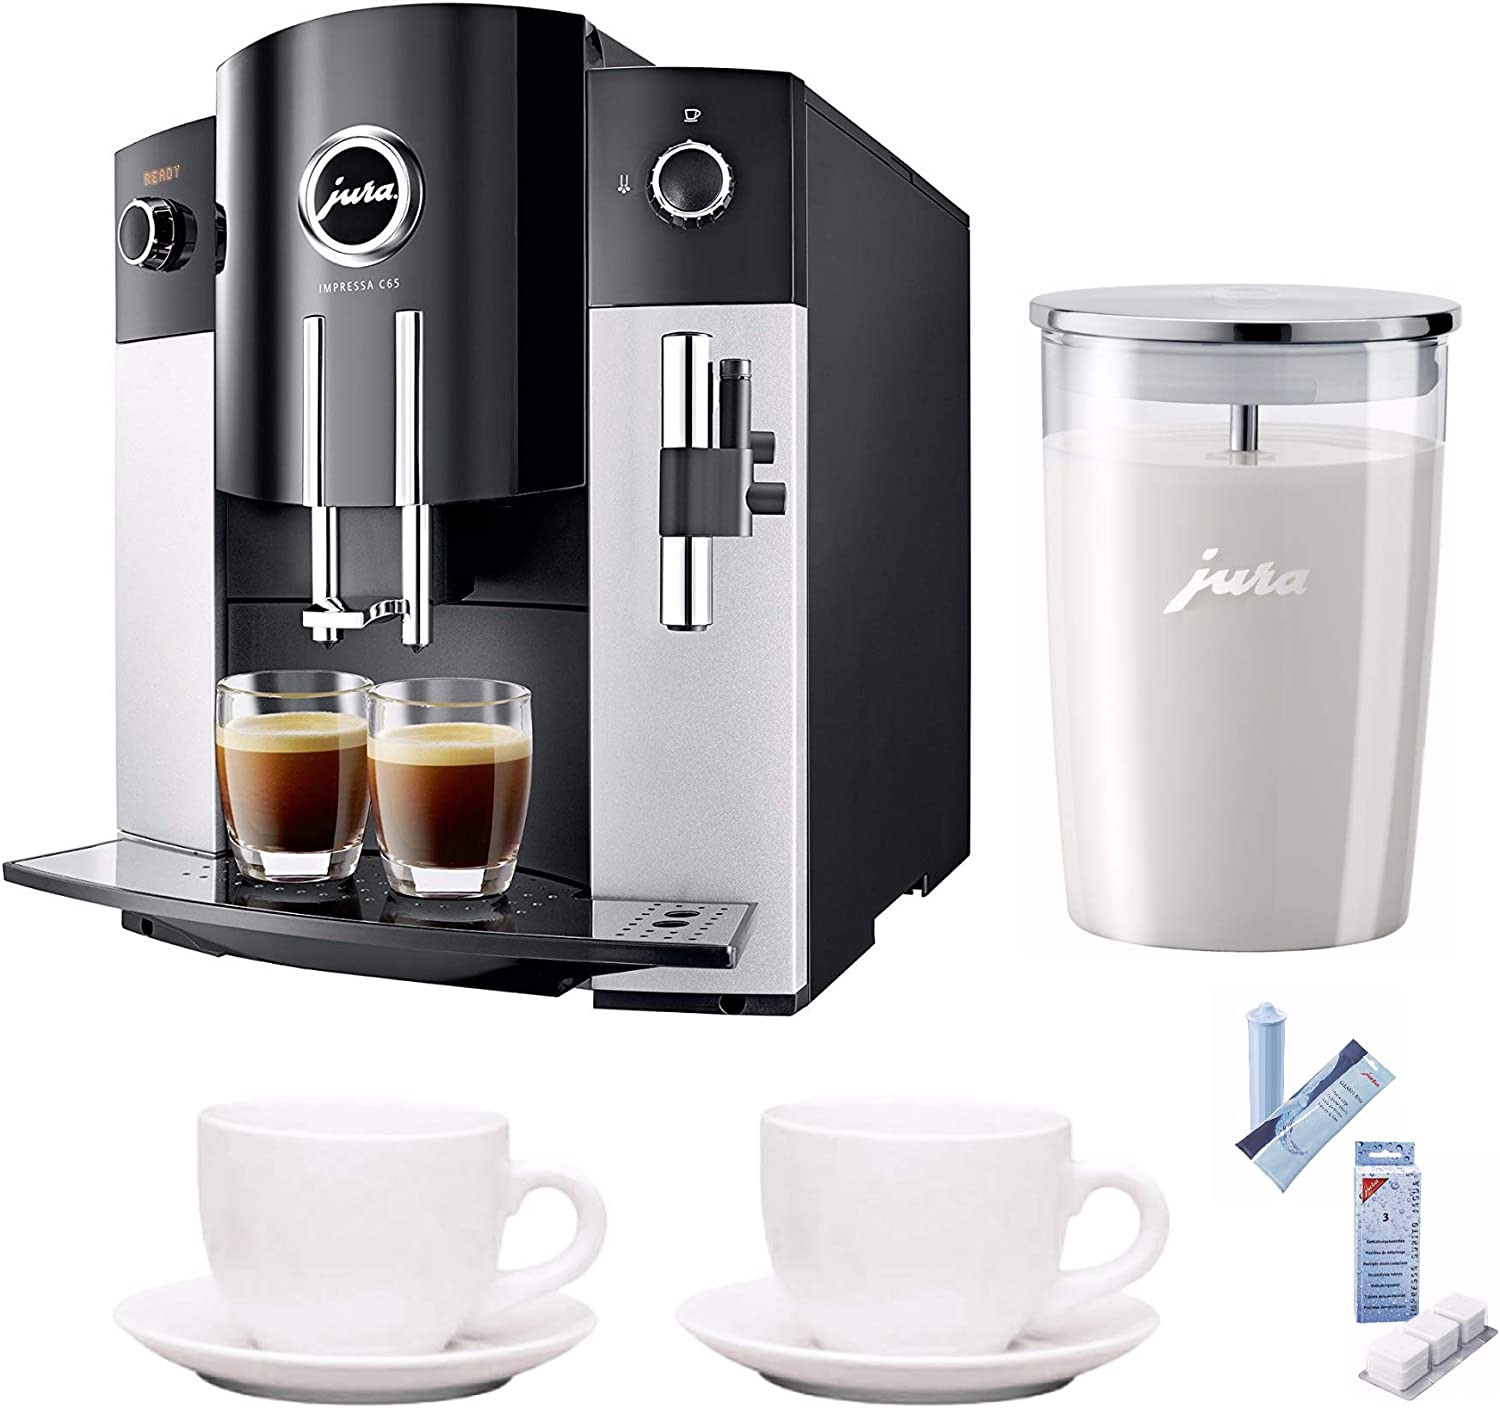 Jura 15068 IMPRESSA C65 Automatic Coffee Machine, Platinum Includes Jura Milk Container, Care Cartridge, Decalcifying Tablets and Set of Ceramic Cups